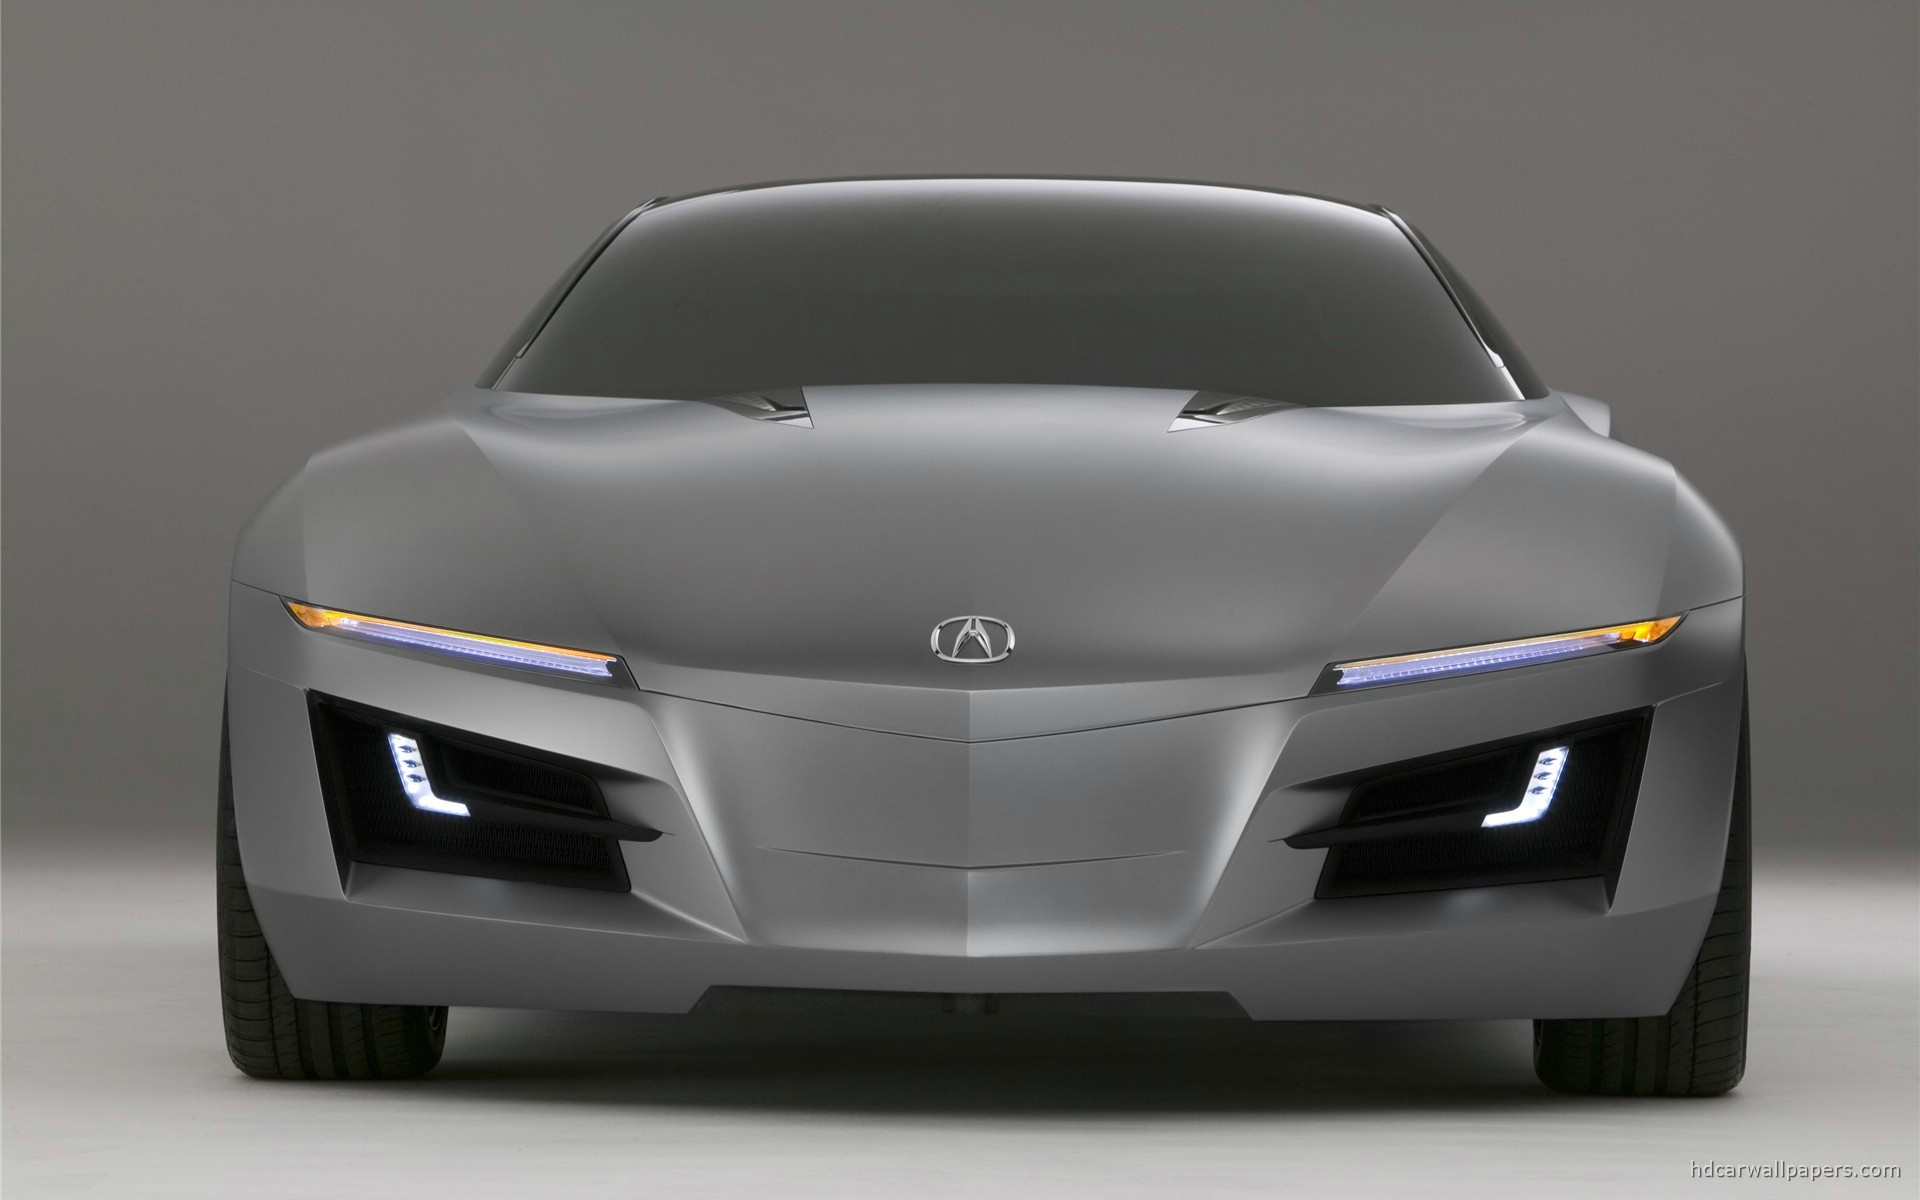 acura nsx sports carwallpapers hd A8